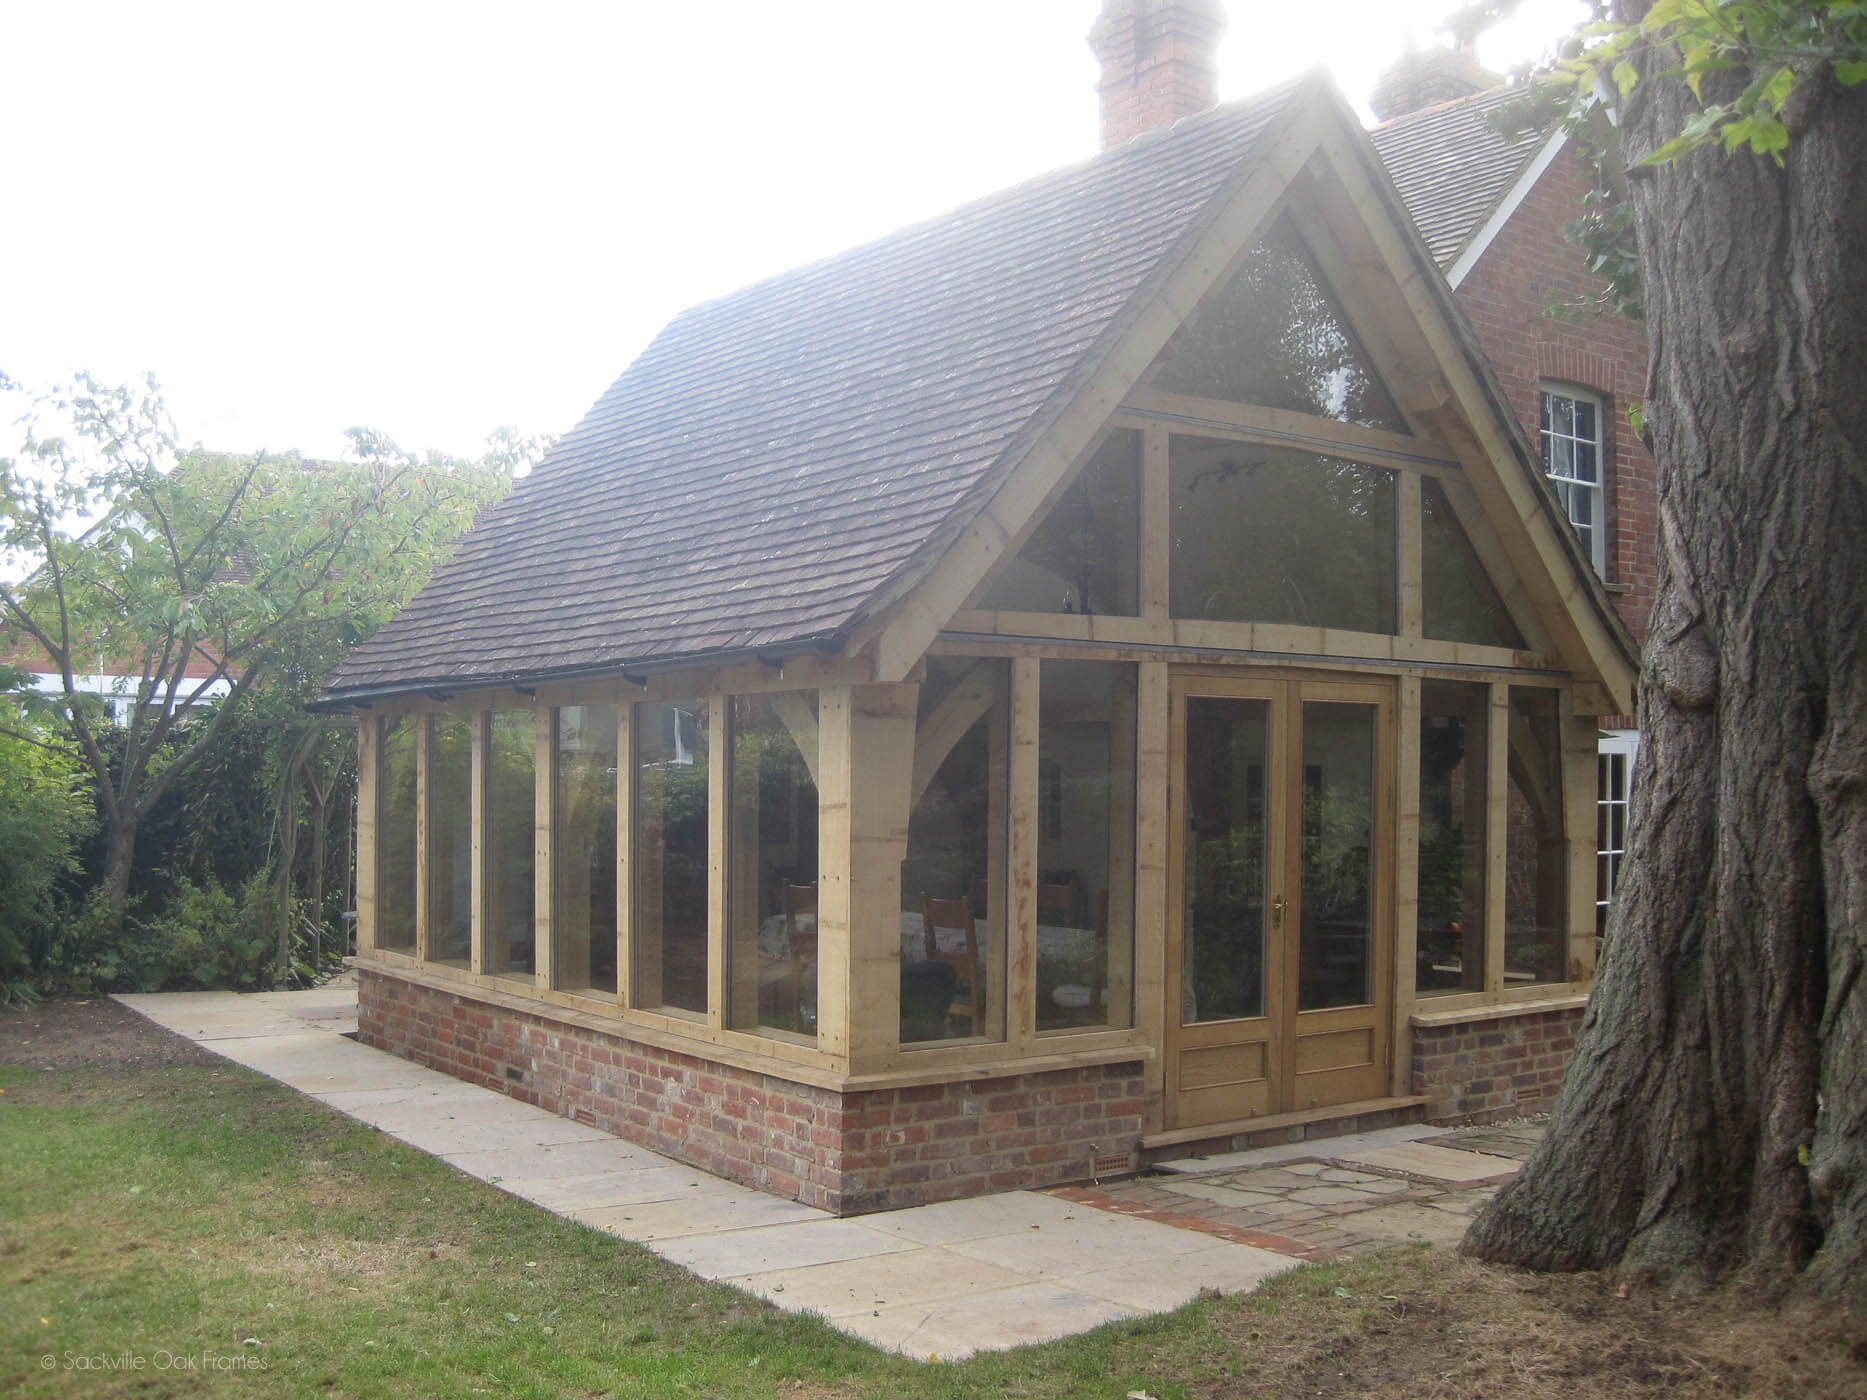 Sackville Oak Frames - Oak Framed Extension - Listed Property - Oak - Extension